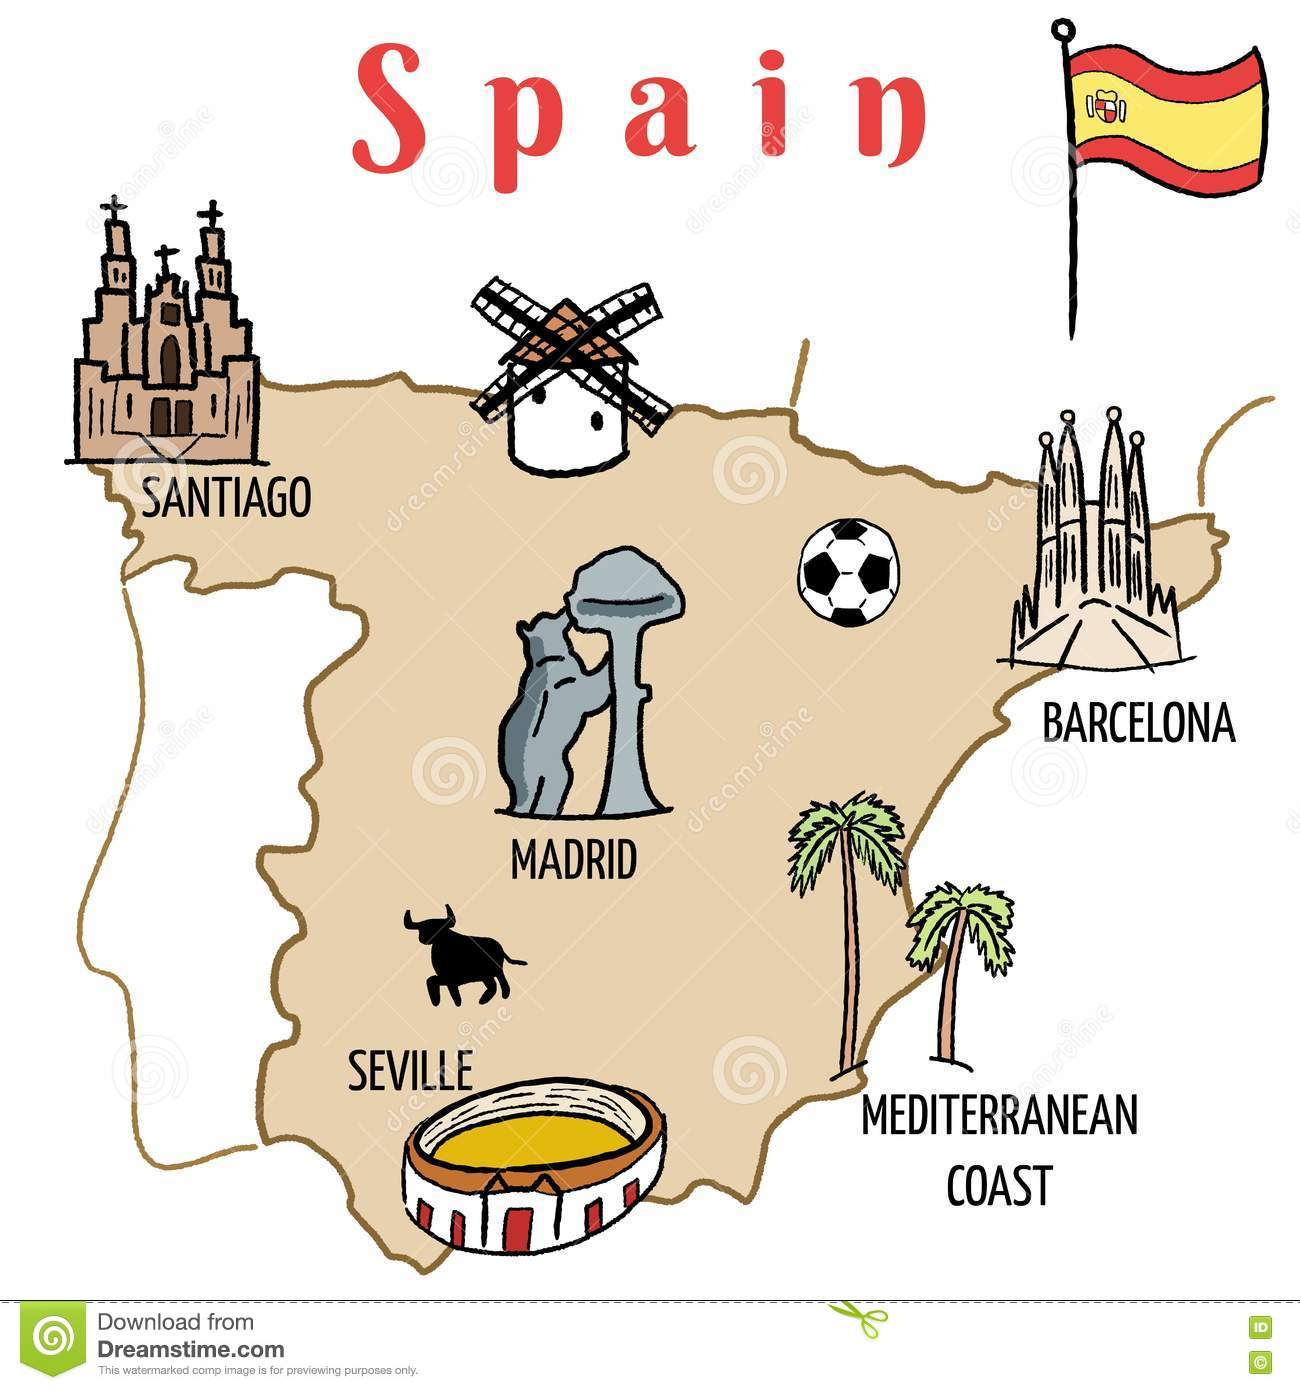 Spain map stock vector. Illustration of flag, tourism - 73365784